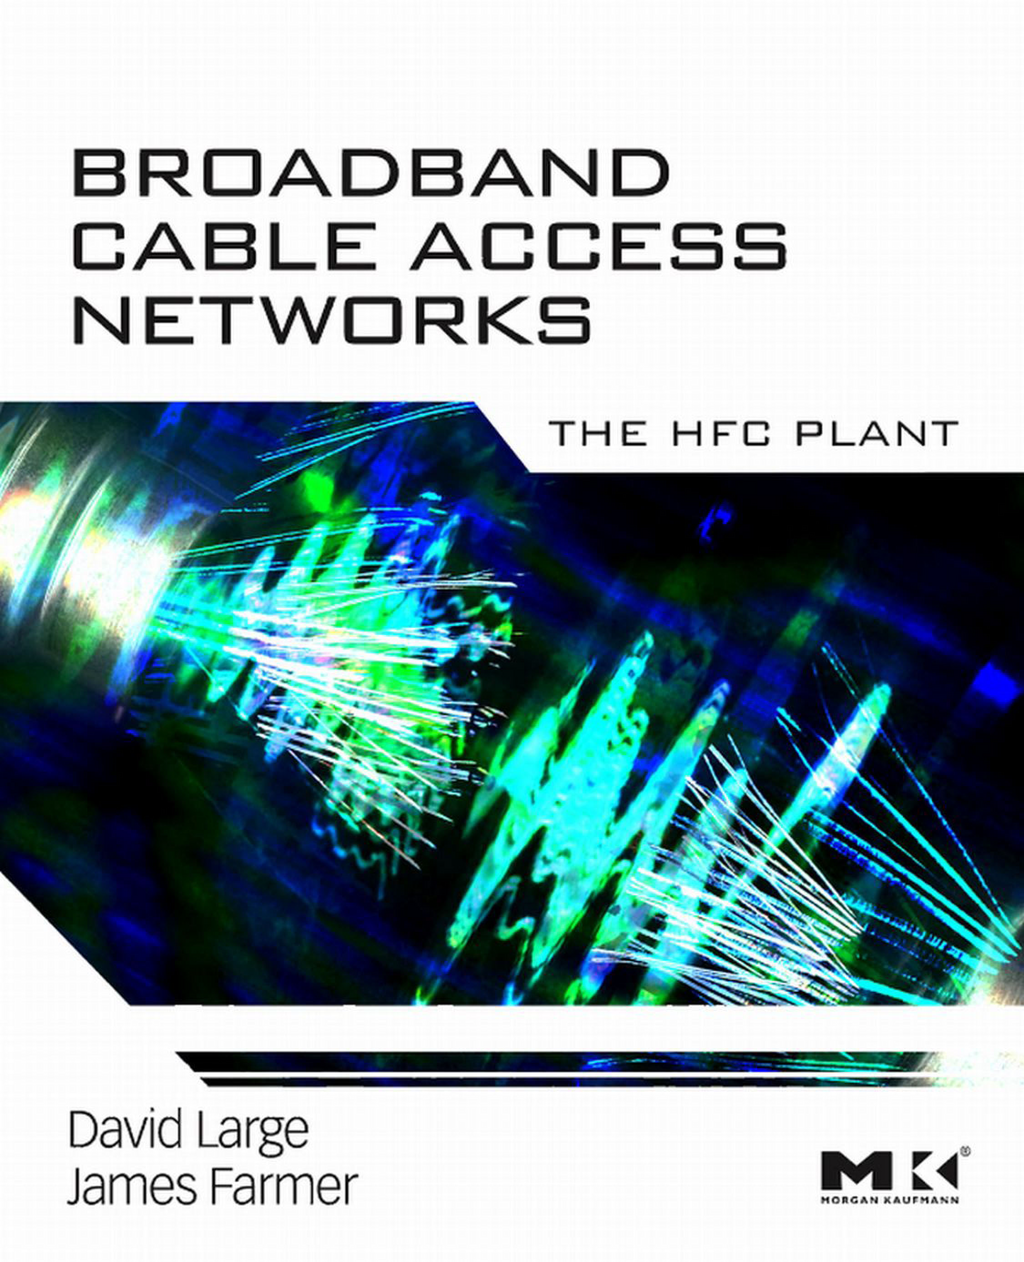 Broadband Cable Access Networks The HFC Plant